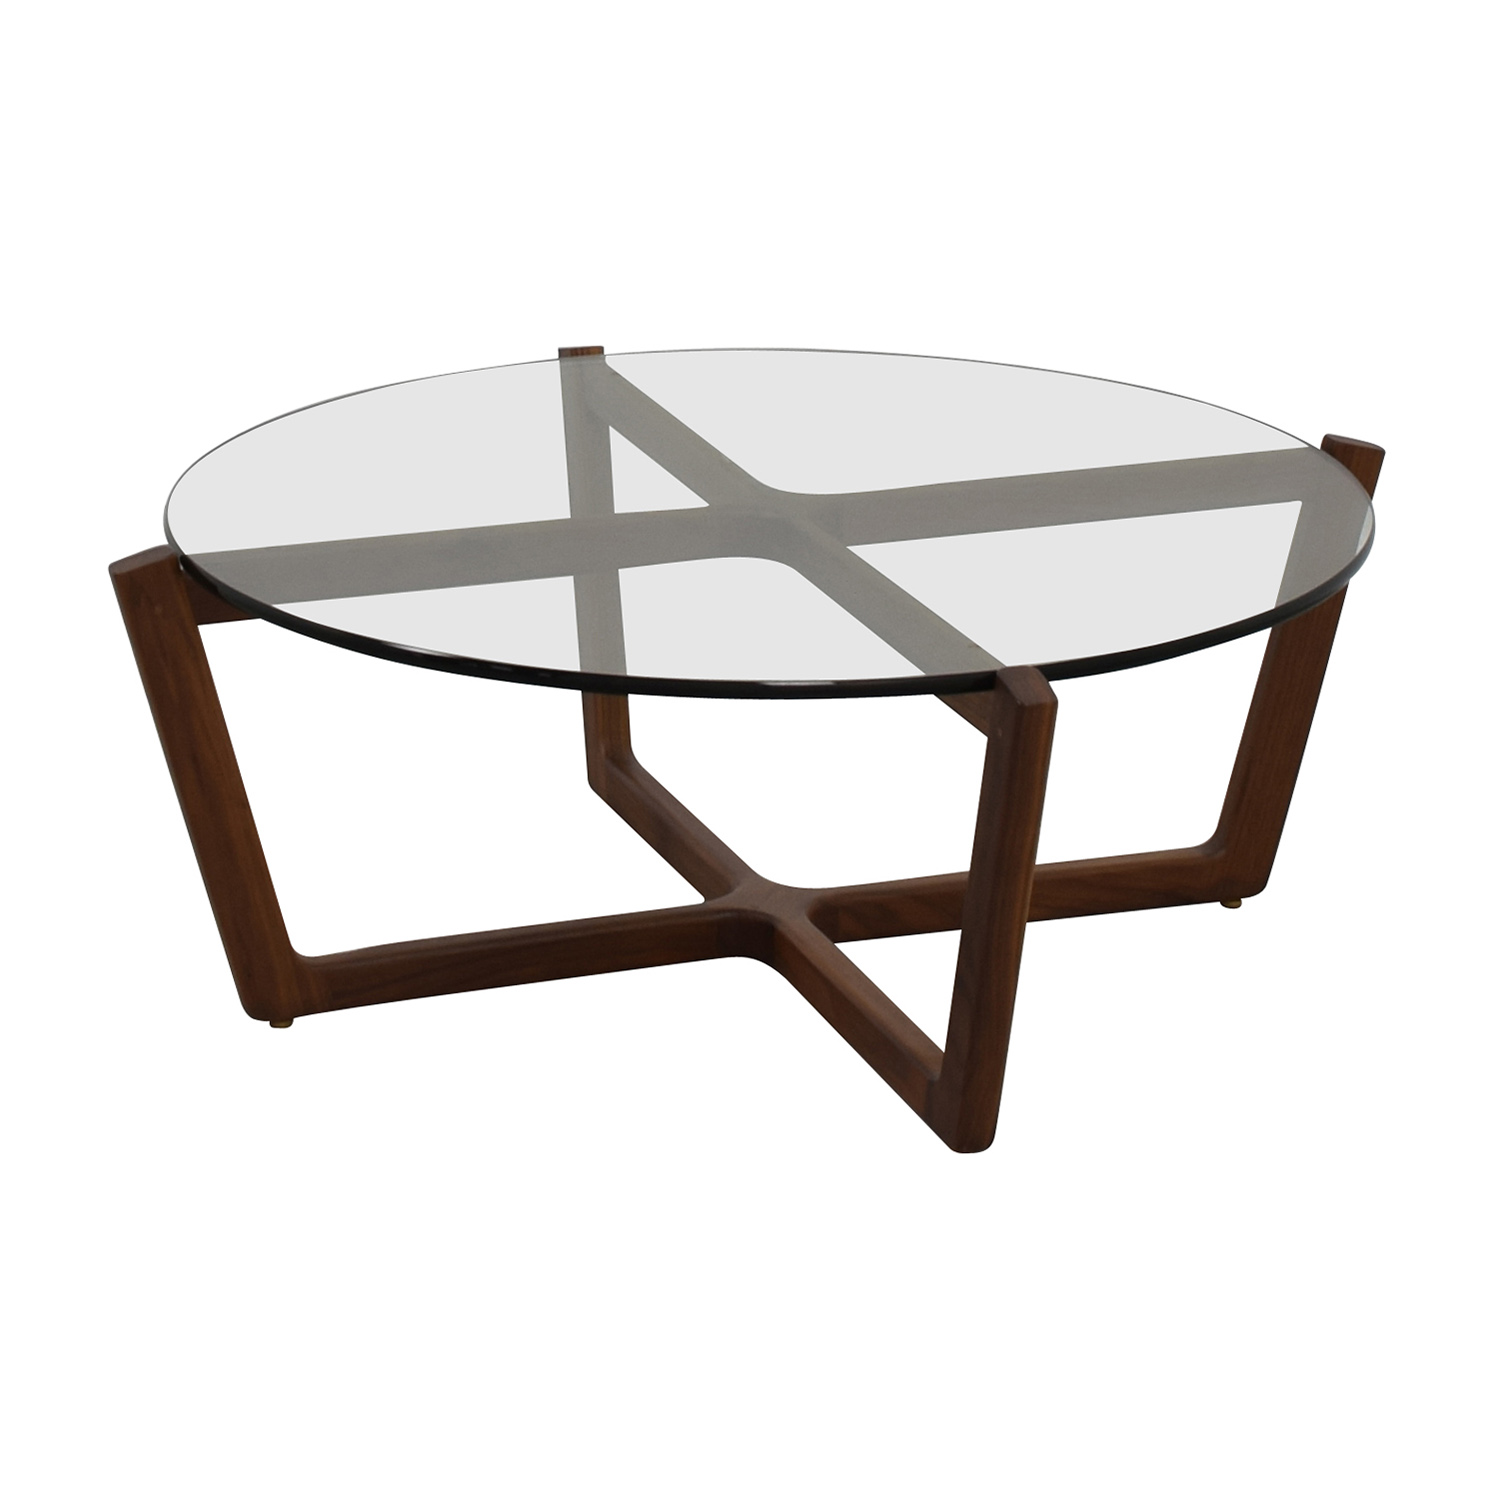 60 Off Design Within Reach Design Within Reach Atlas Coffee Table Tables